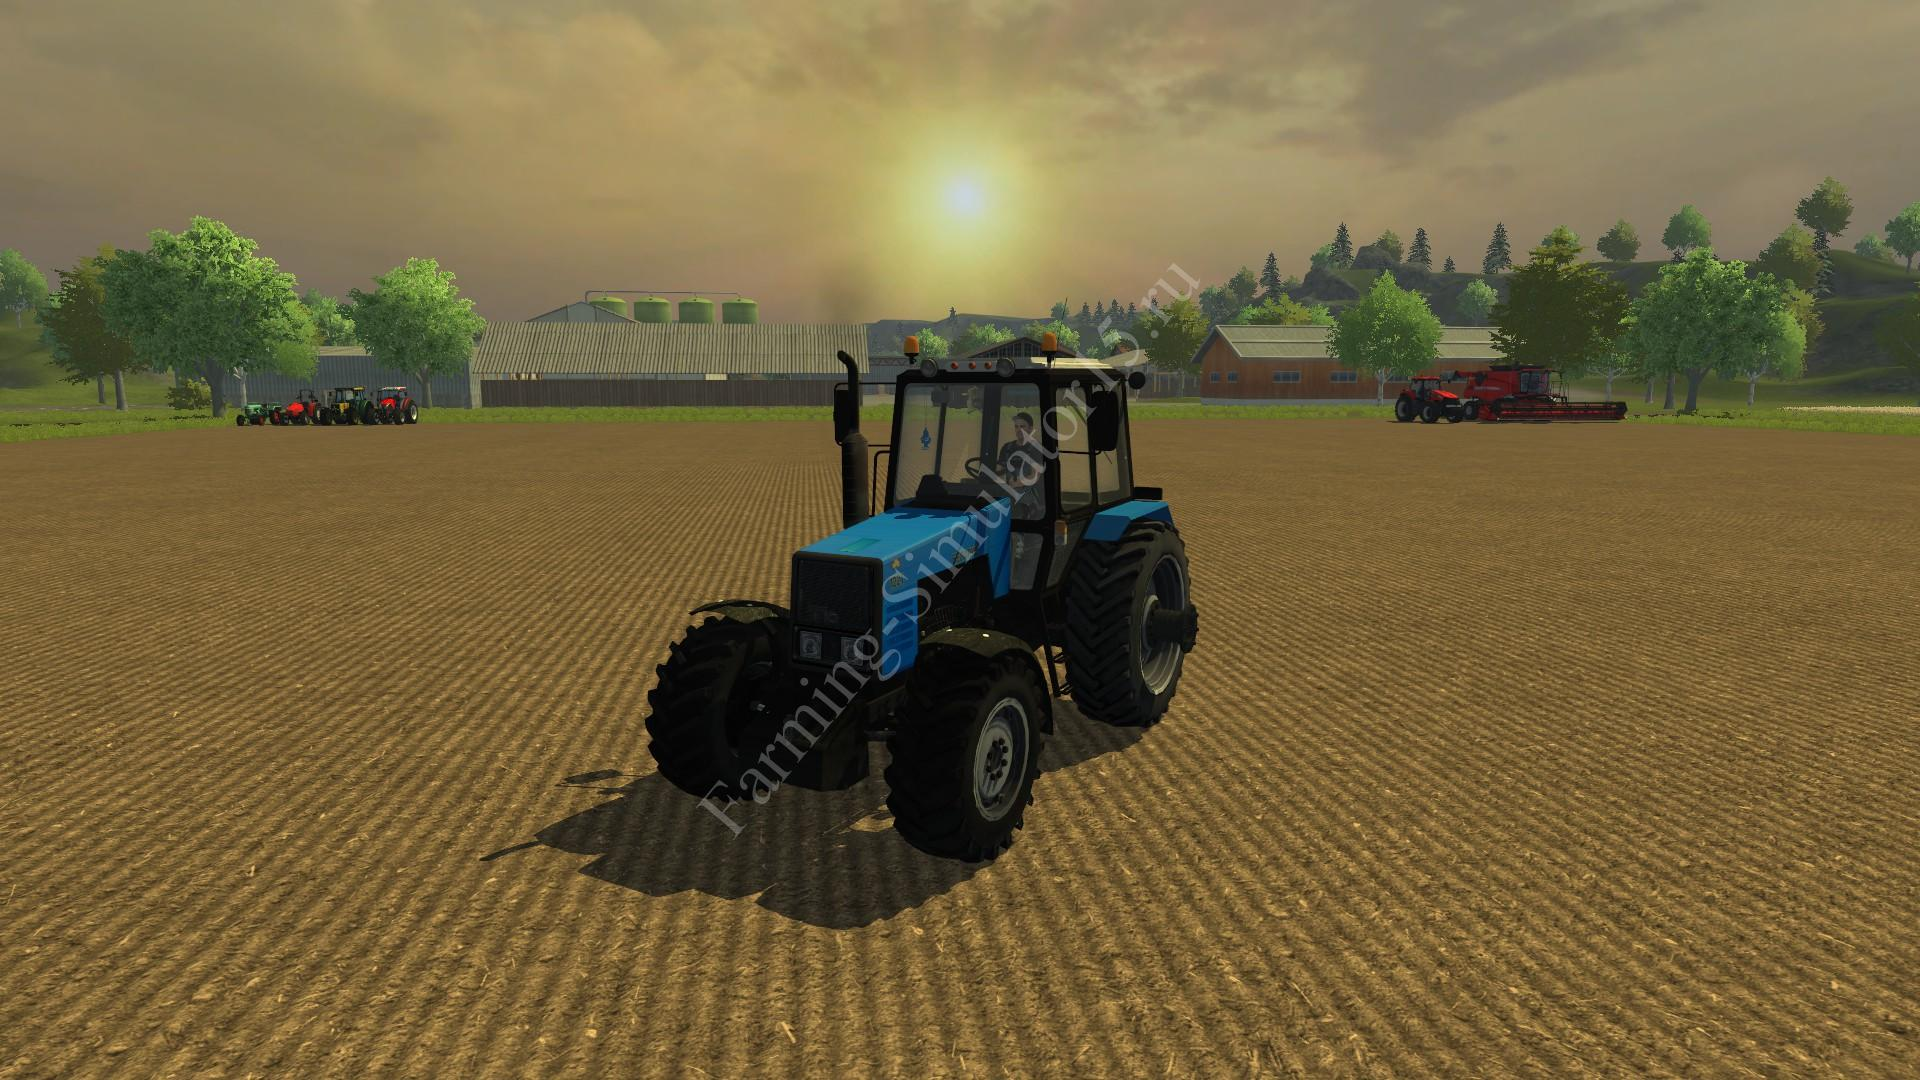 Мод трактора MTZ 1221 v 1.0 Farming Simulator 2013, Farming Simulator 13